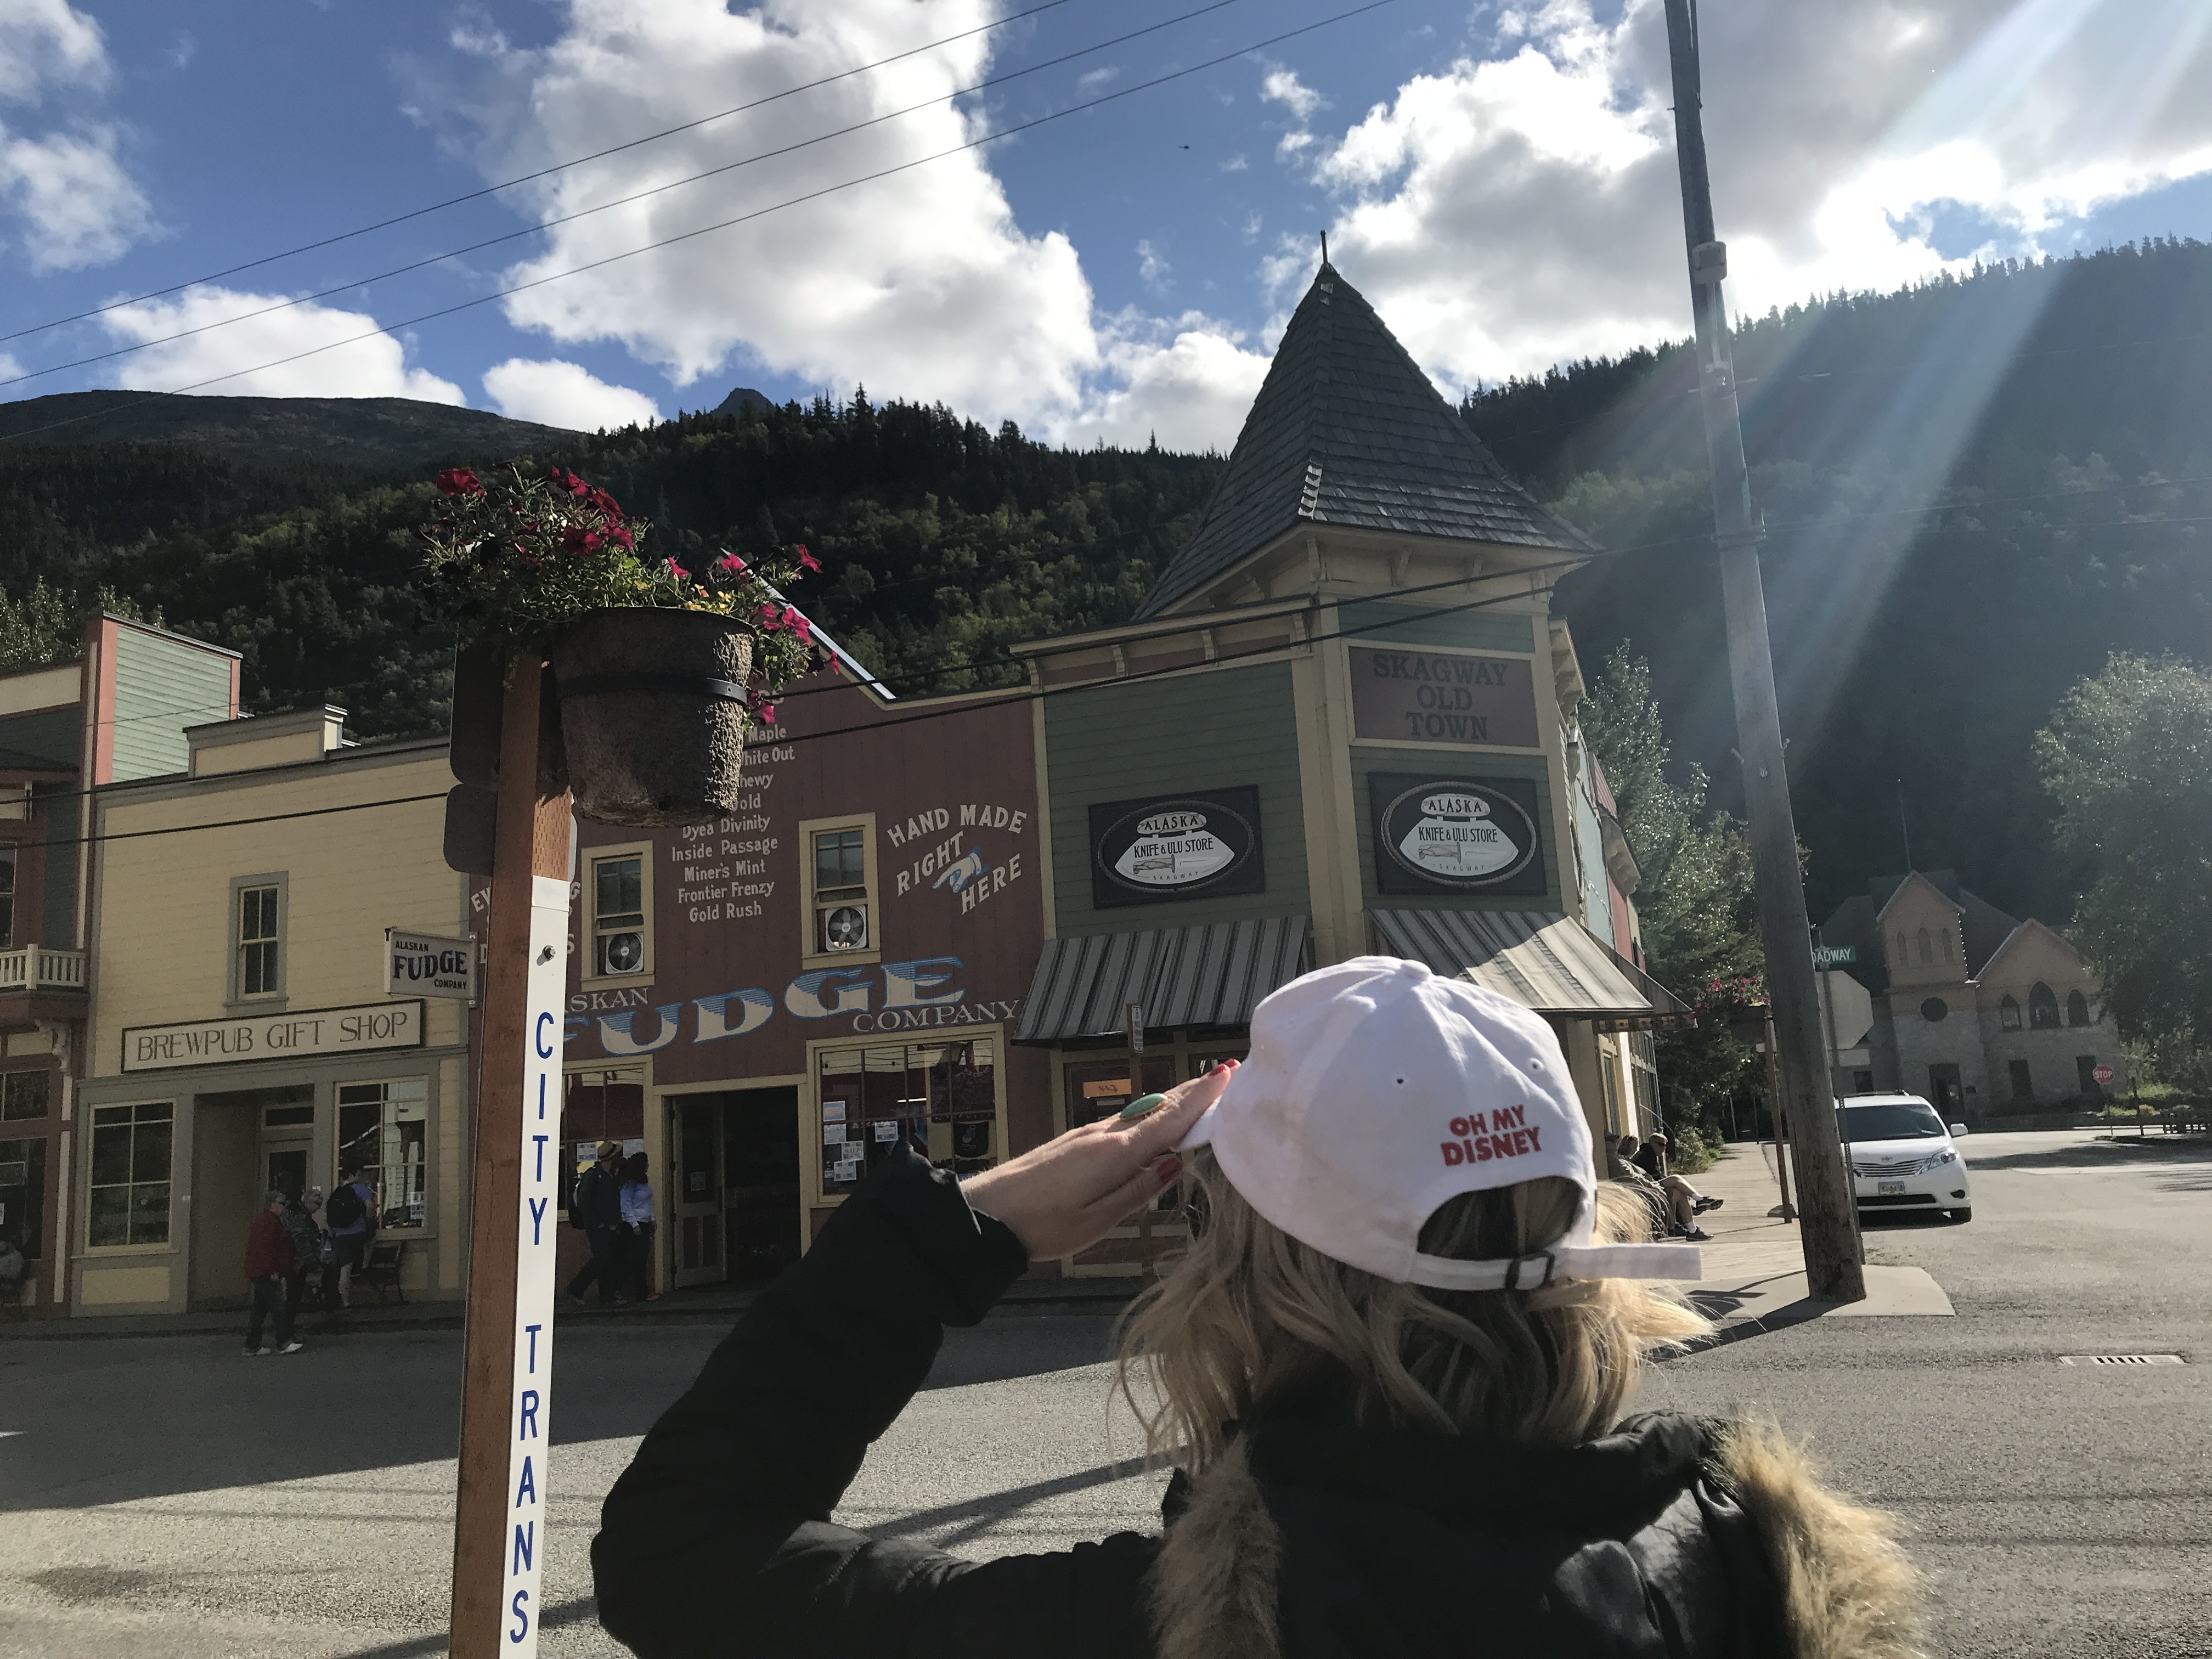 Skagway Main Street on Disney Wonder Alaska Cruise with Oh My Disney hat